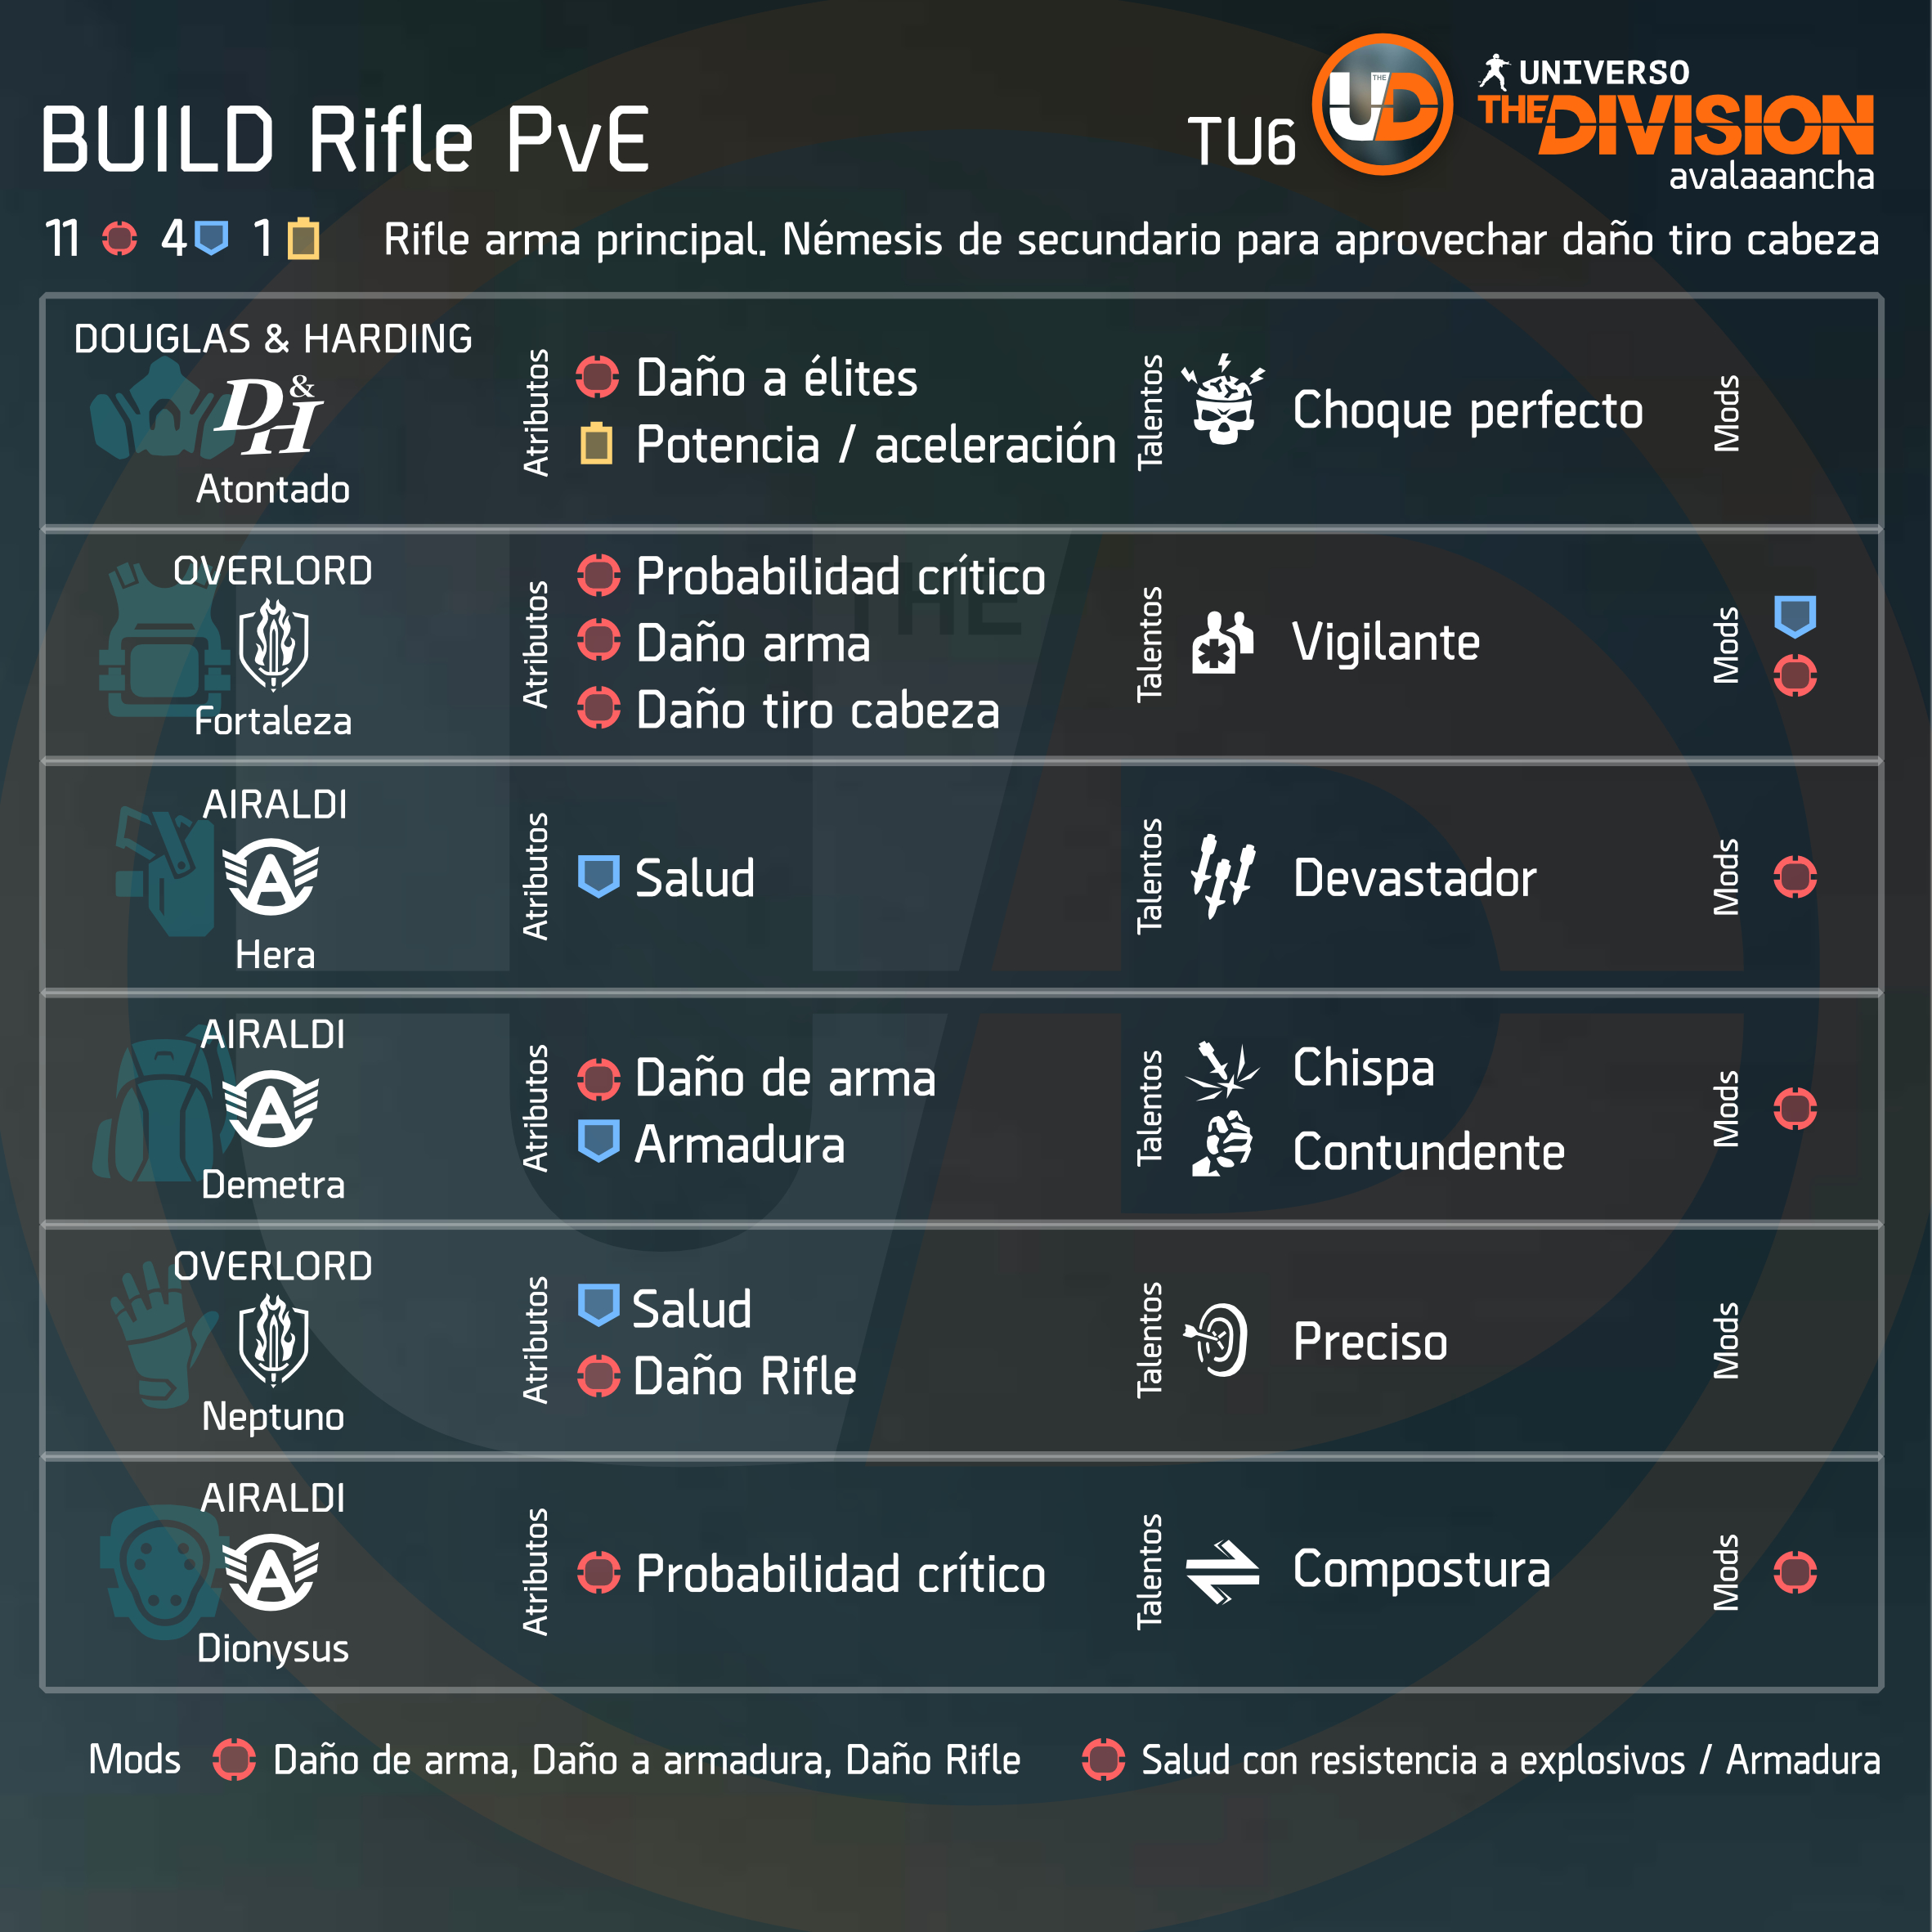 Build Rifle